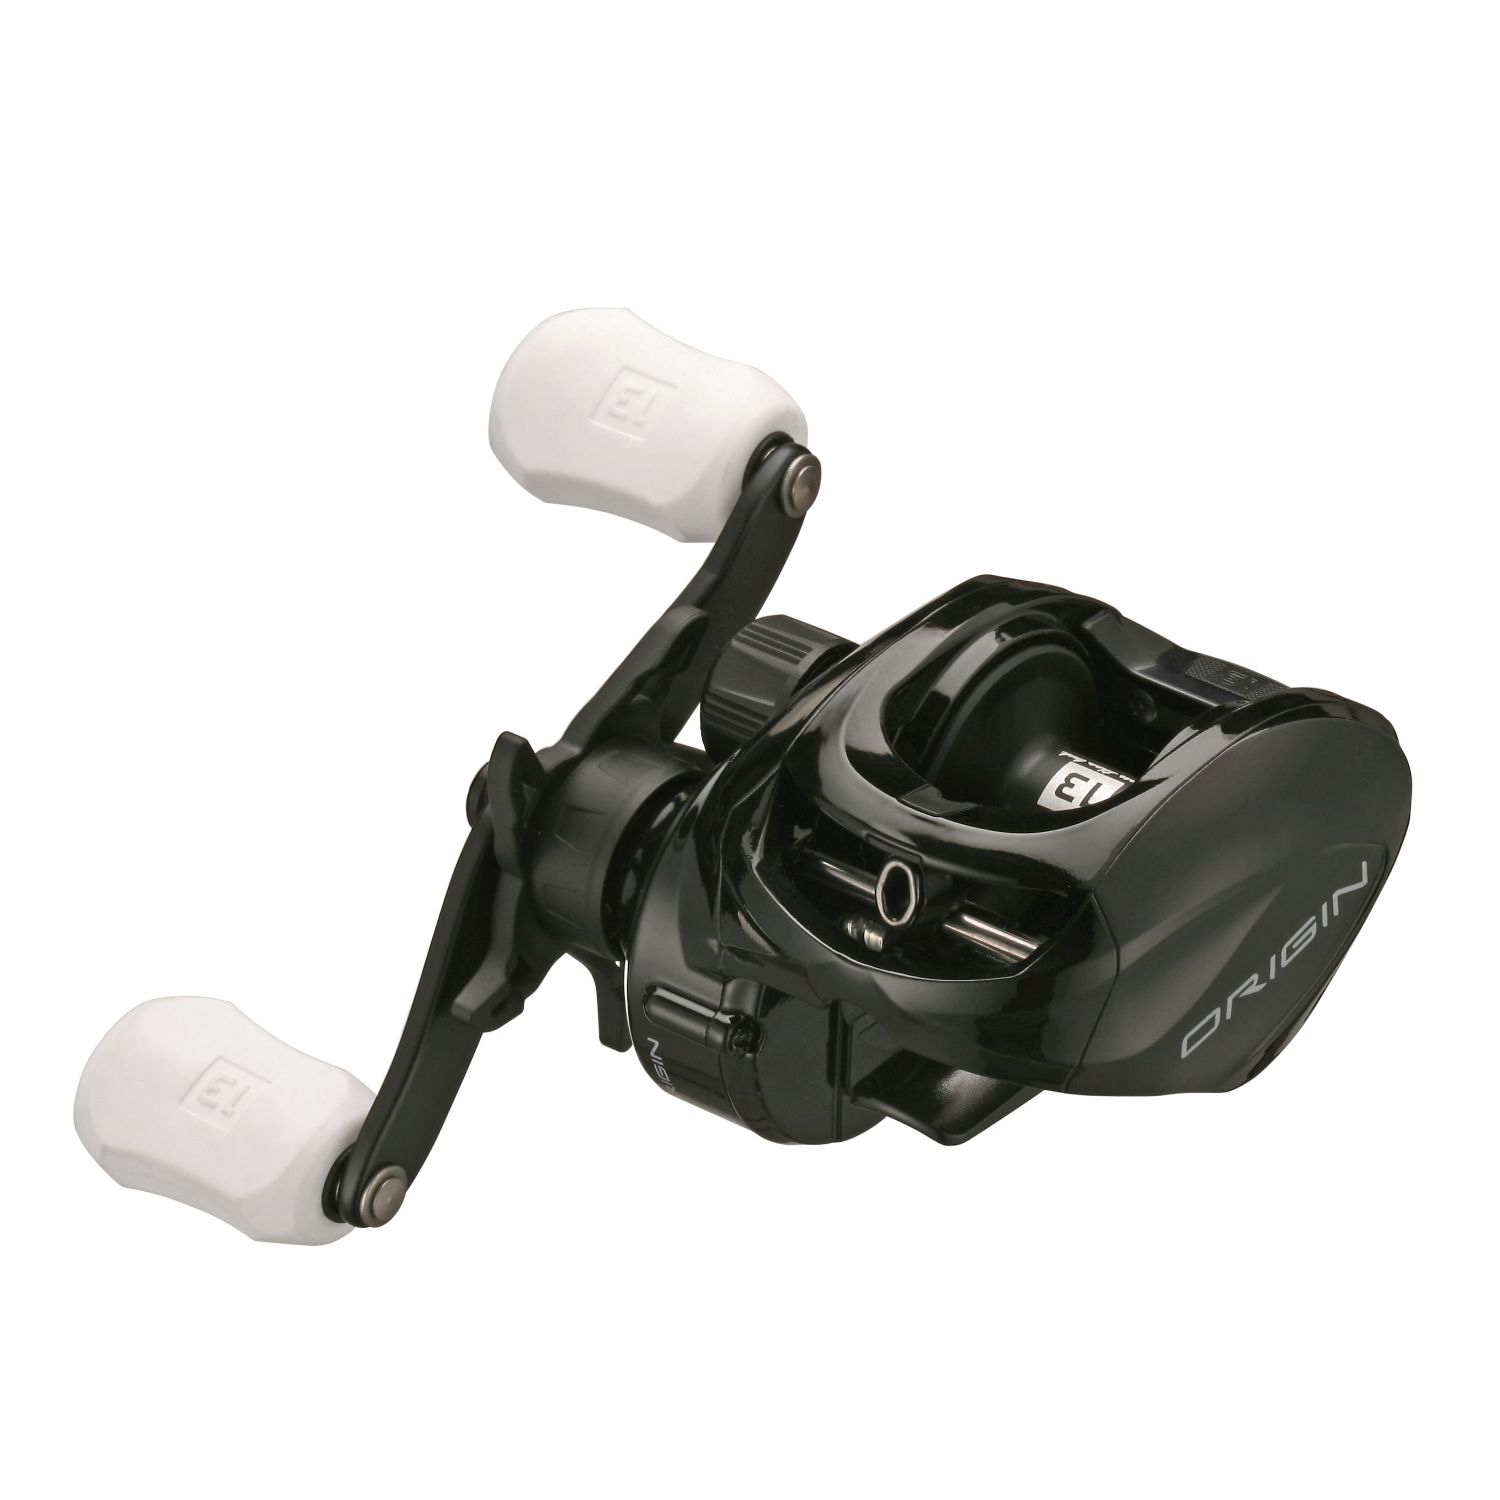 13 Fishing ORIGIN A Baitcast Reel 8.1:1 RH